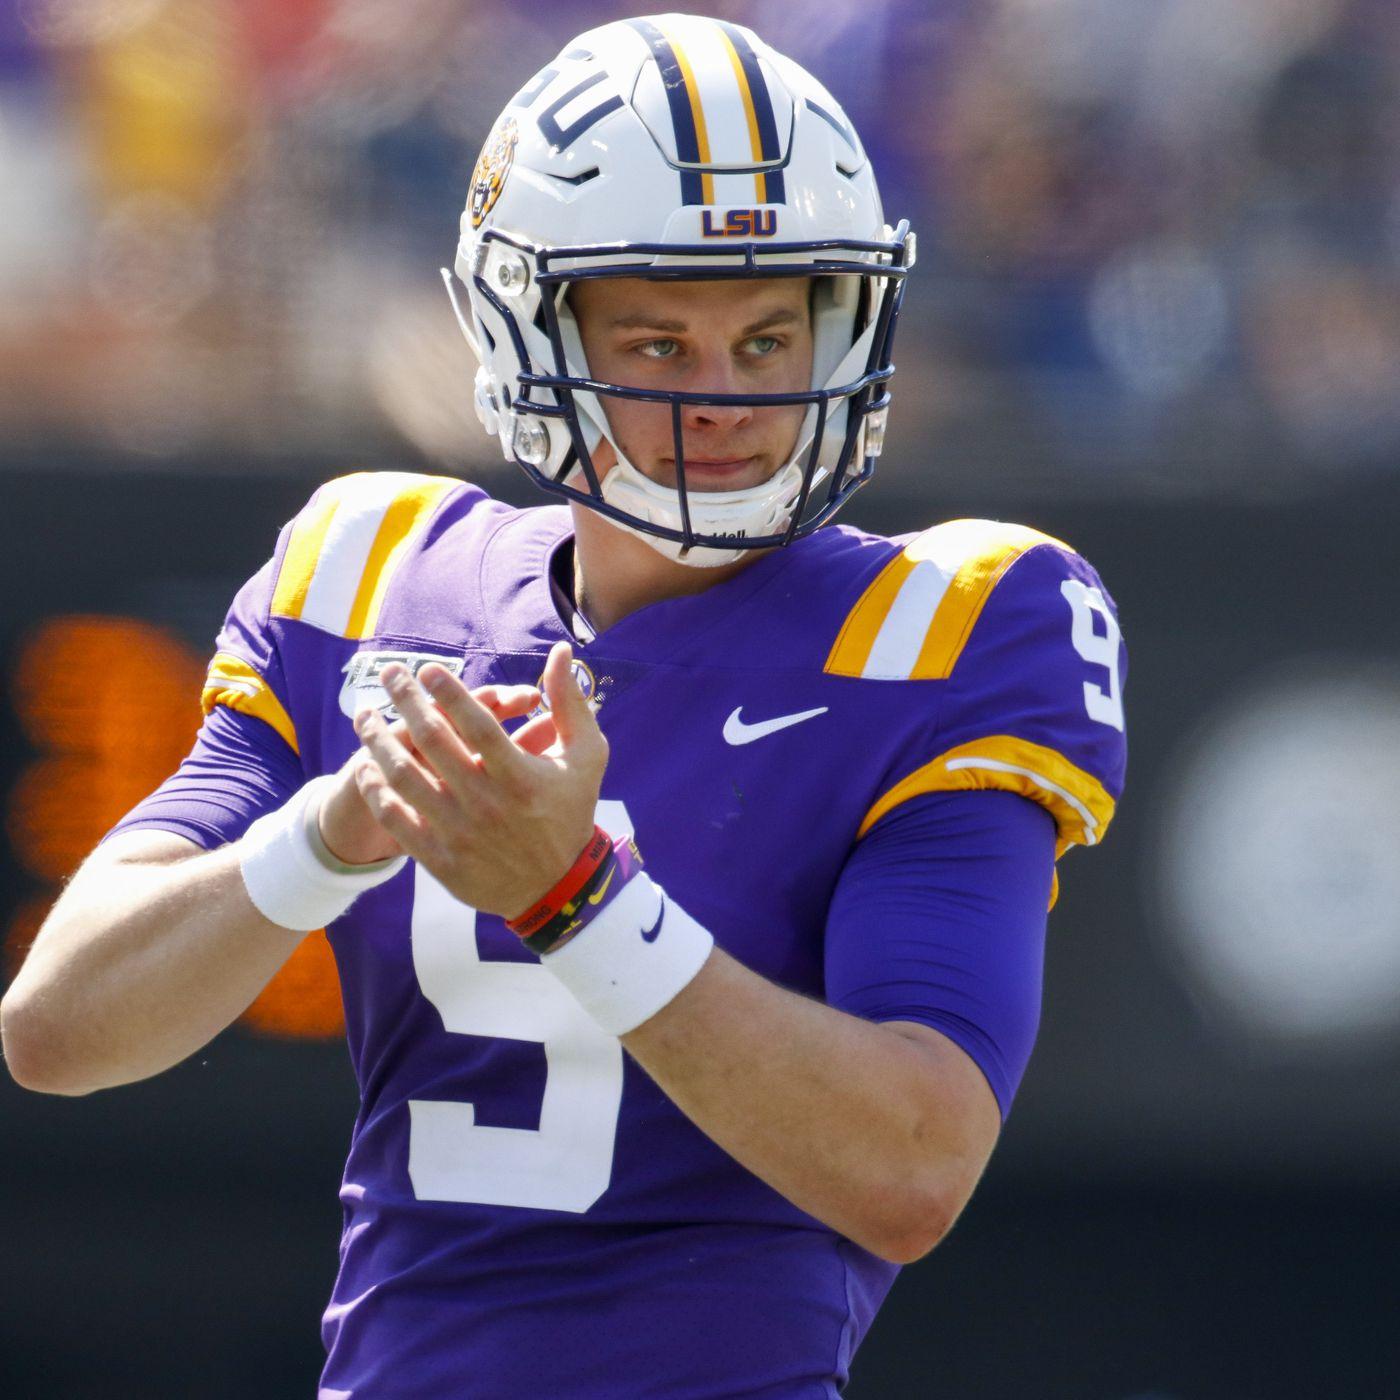 New Titans Uniforms 2020.Window Shopping For 2020 Quarterback Options For The Titans